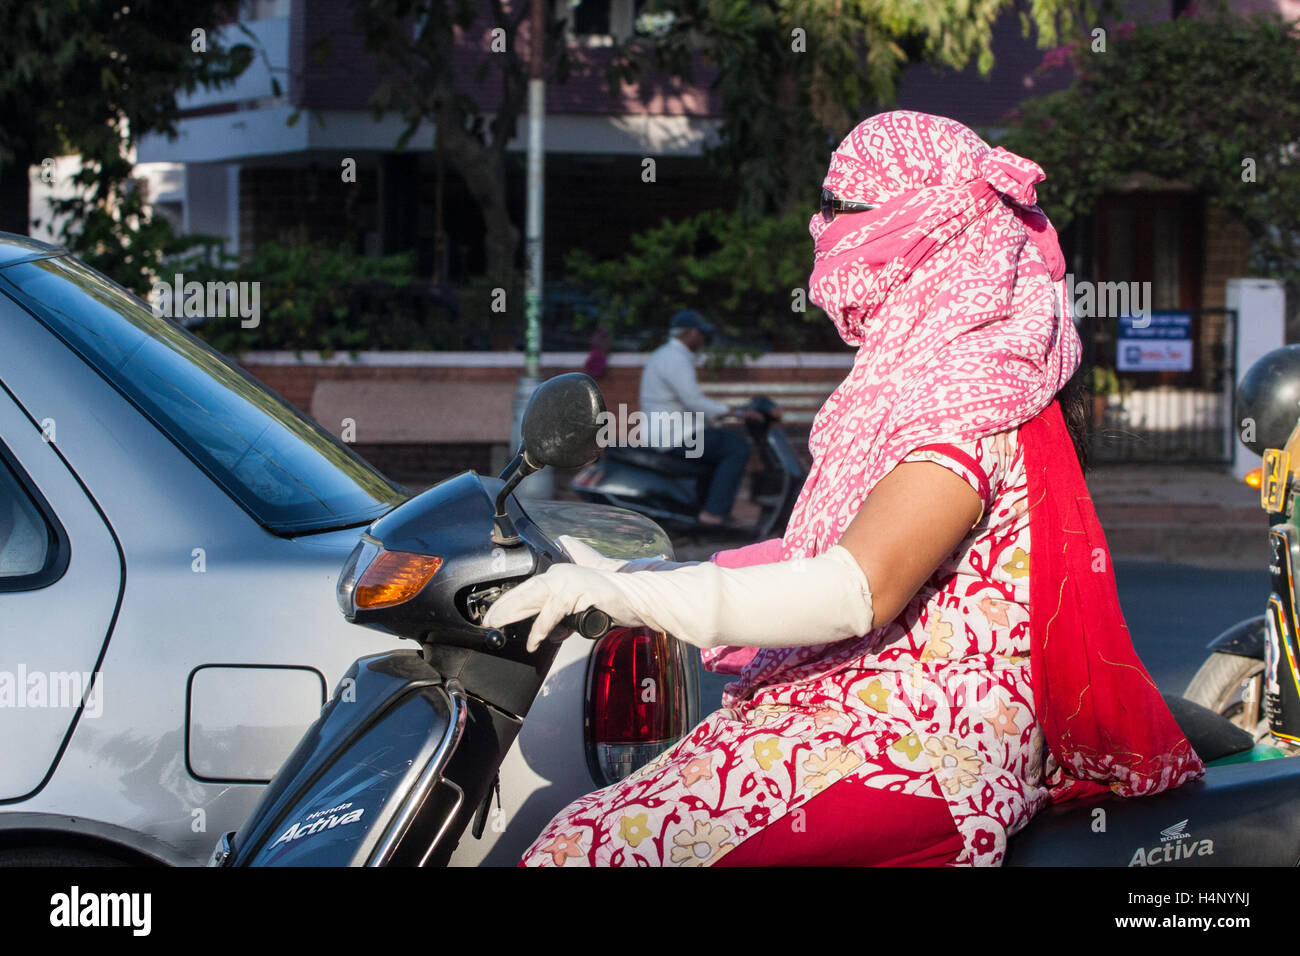 Face and arm covered woman, to protect from sun and pollution, riding driving on a scooter in centre of Ahmedabad,Gujurat. - Stock Image